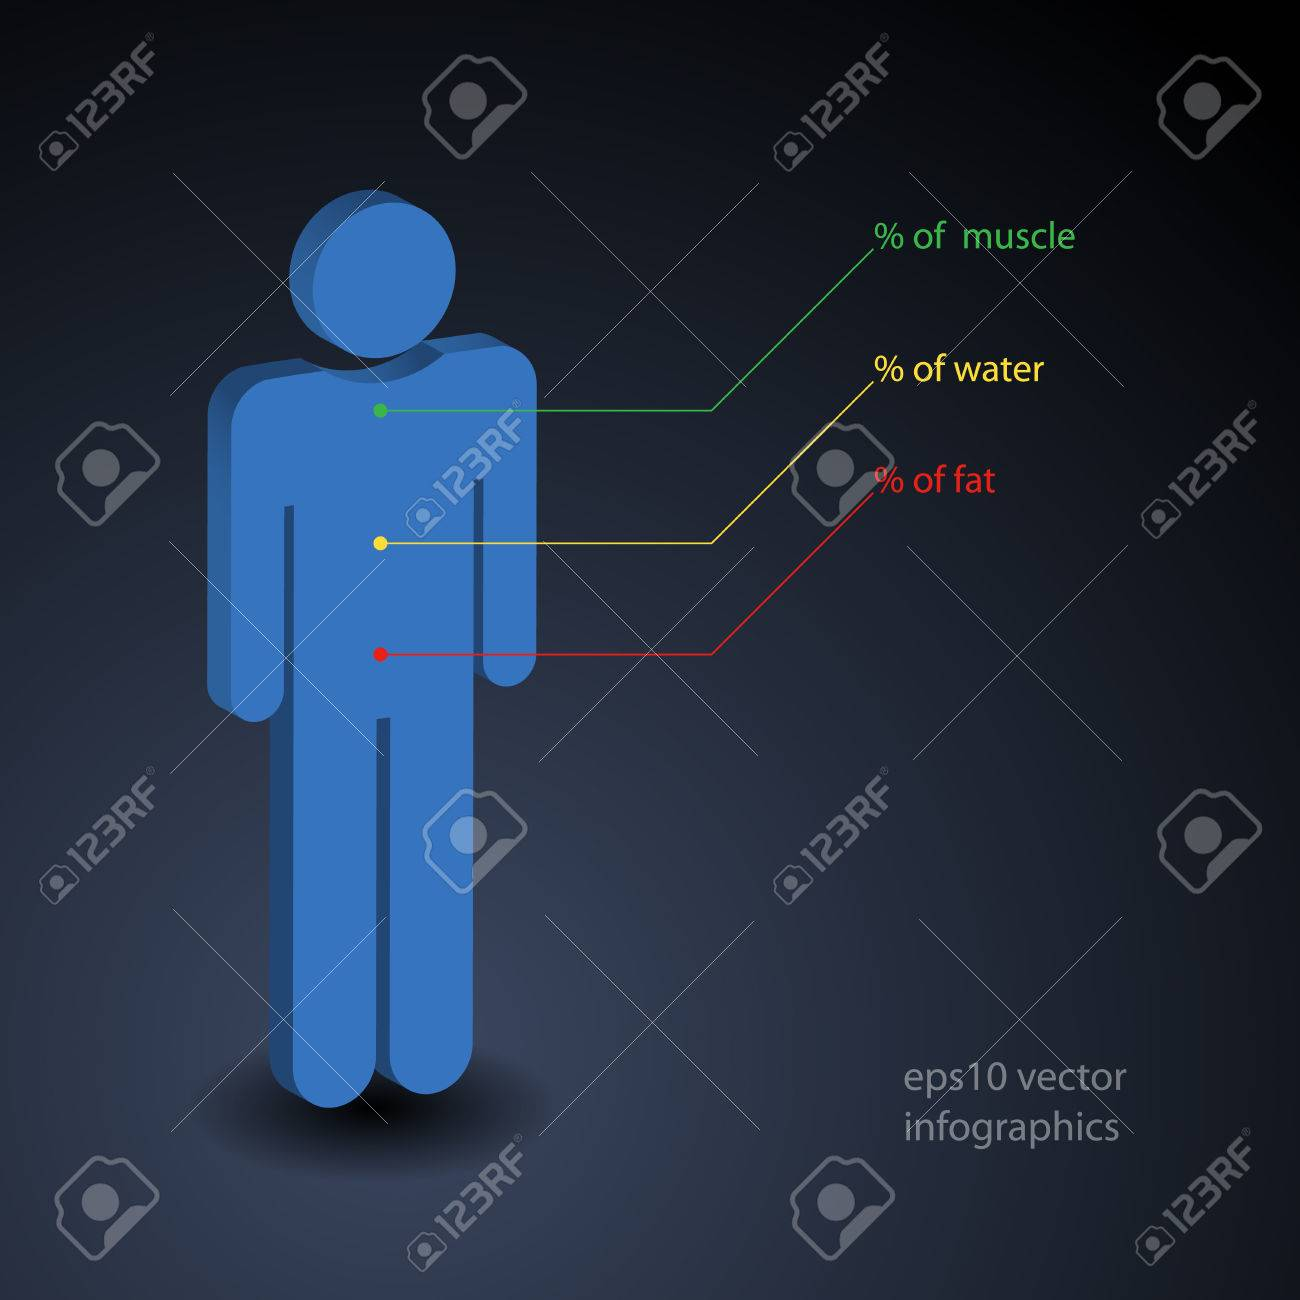 hight resolution of simple infographic about percentage of muscle water and fat in human body stock photo